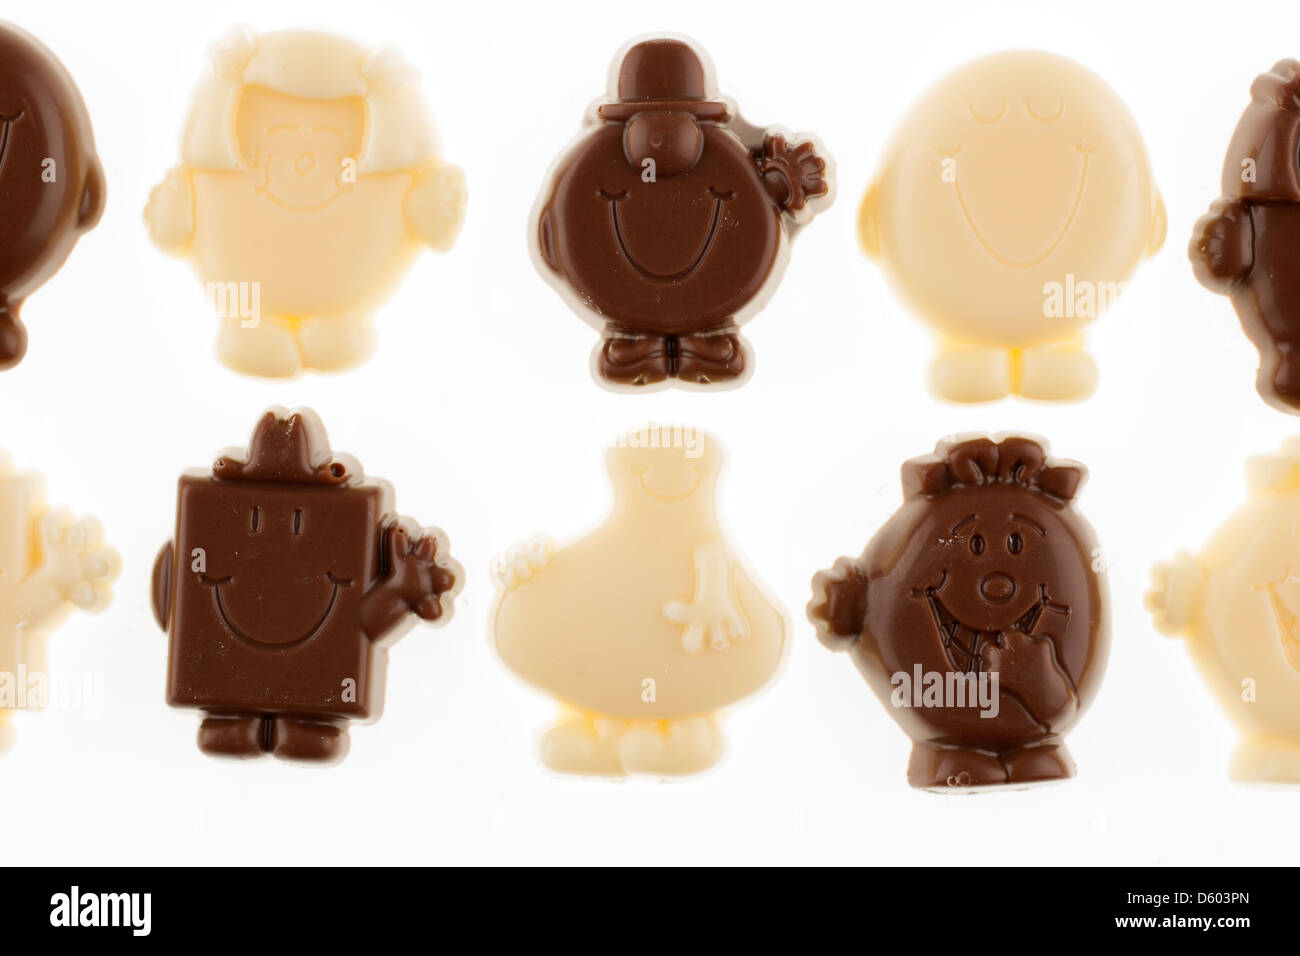 Mr Men white and milk chocolate figures - Stock Image